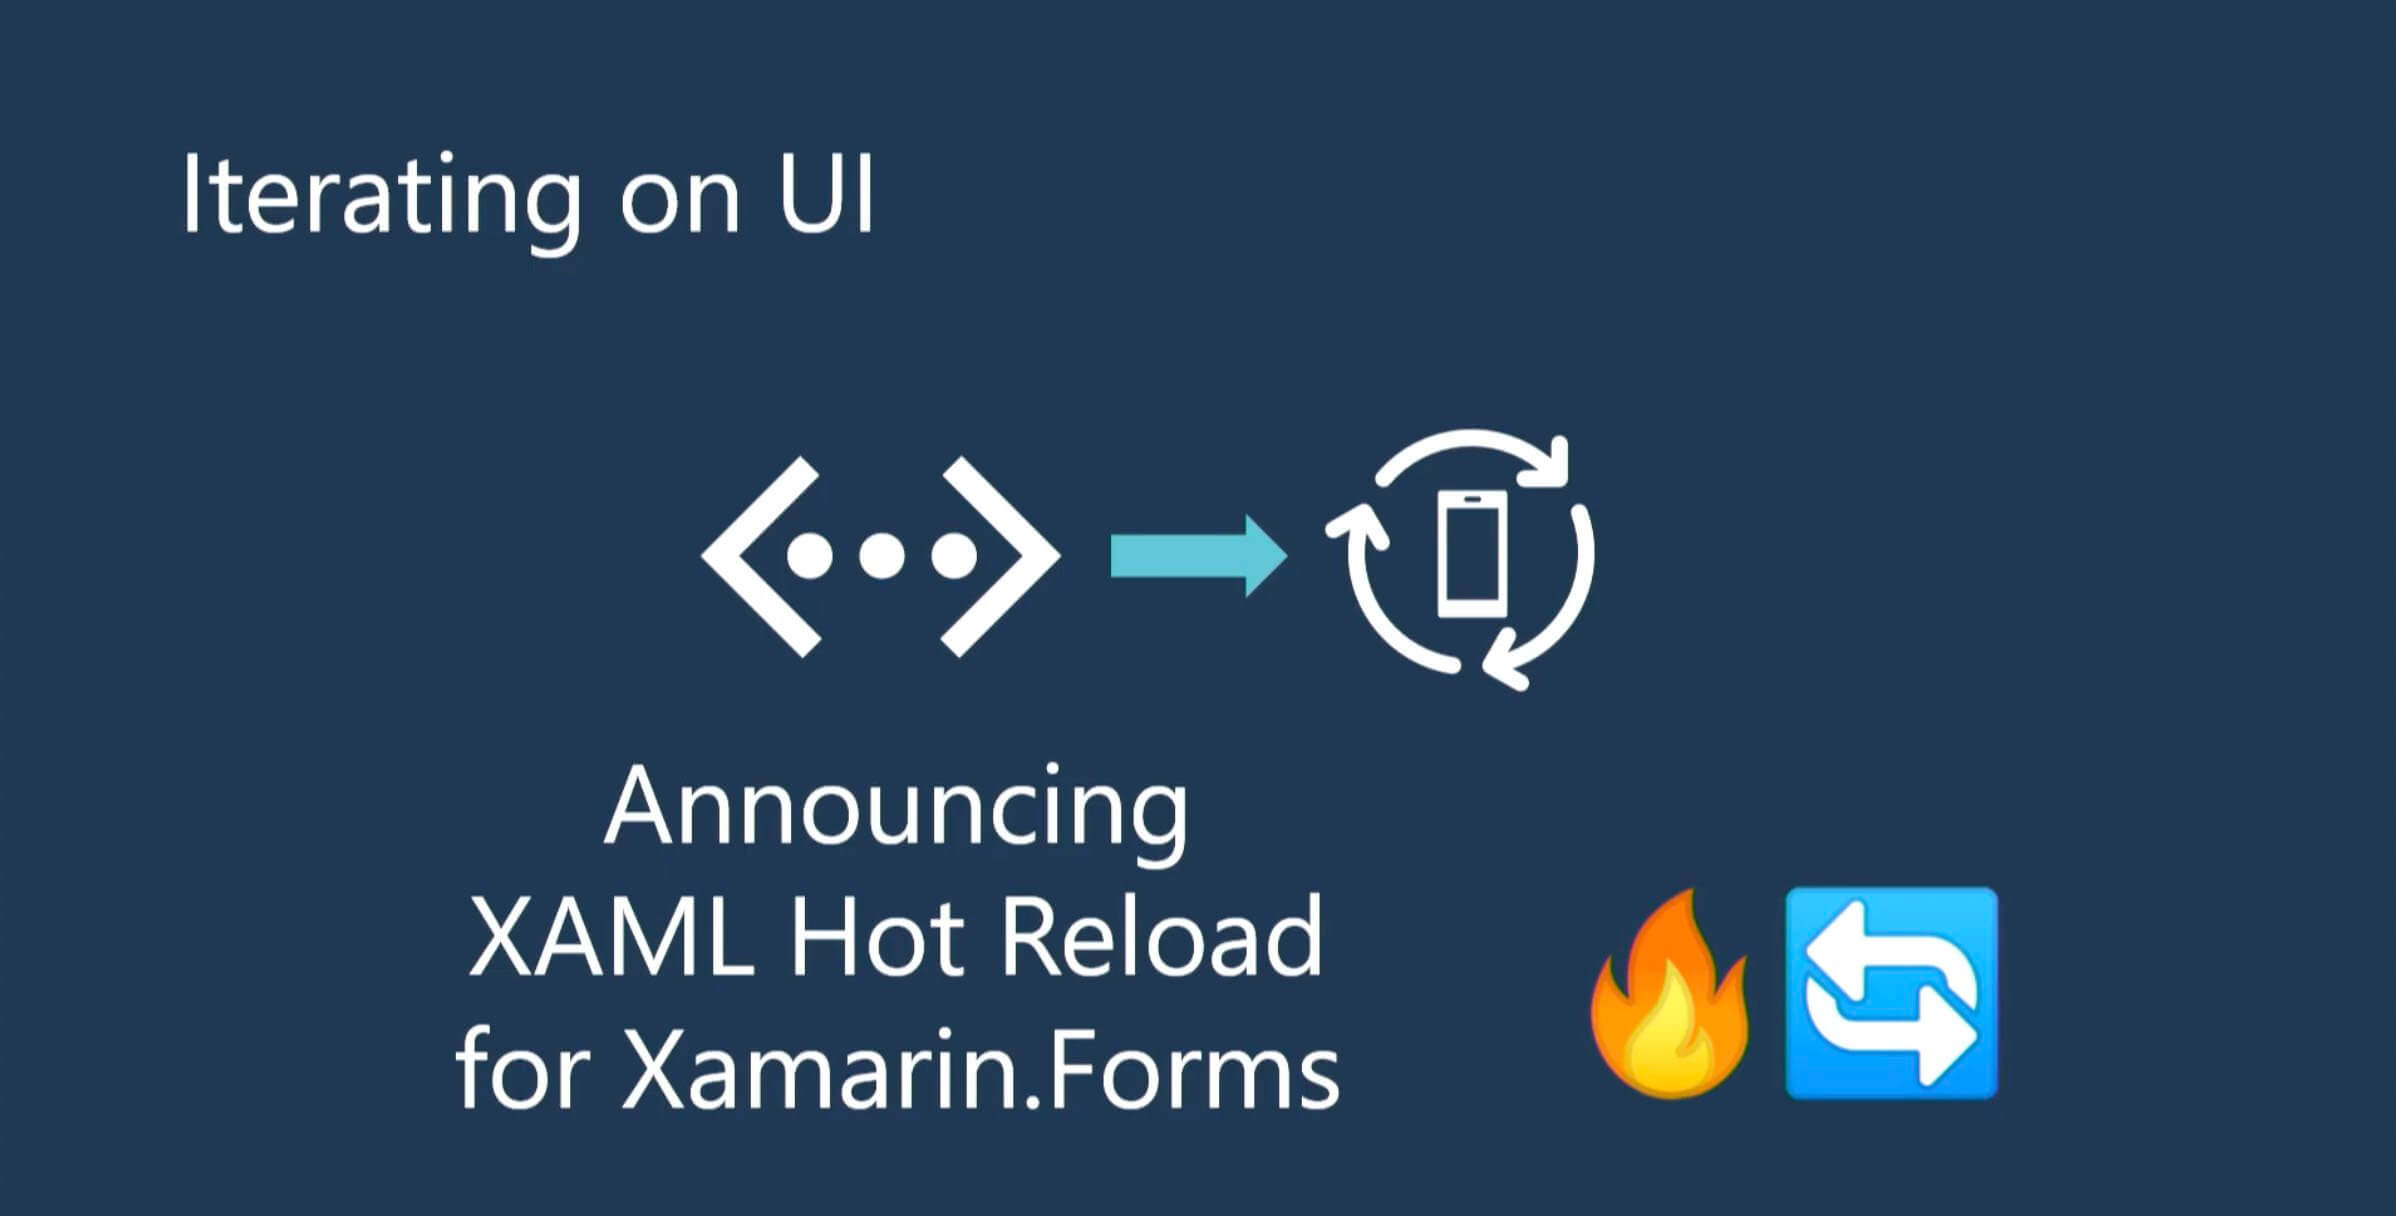 Hot Reload: Now Available in Xamarin.Forms